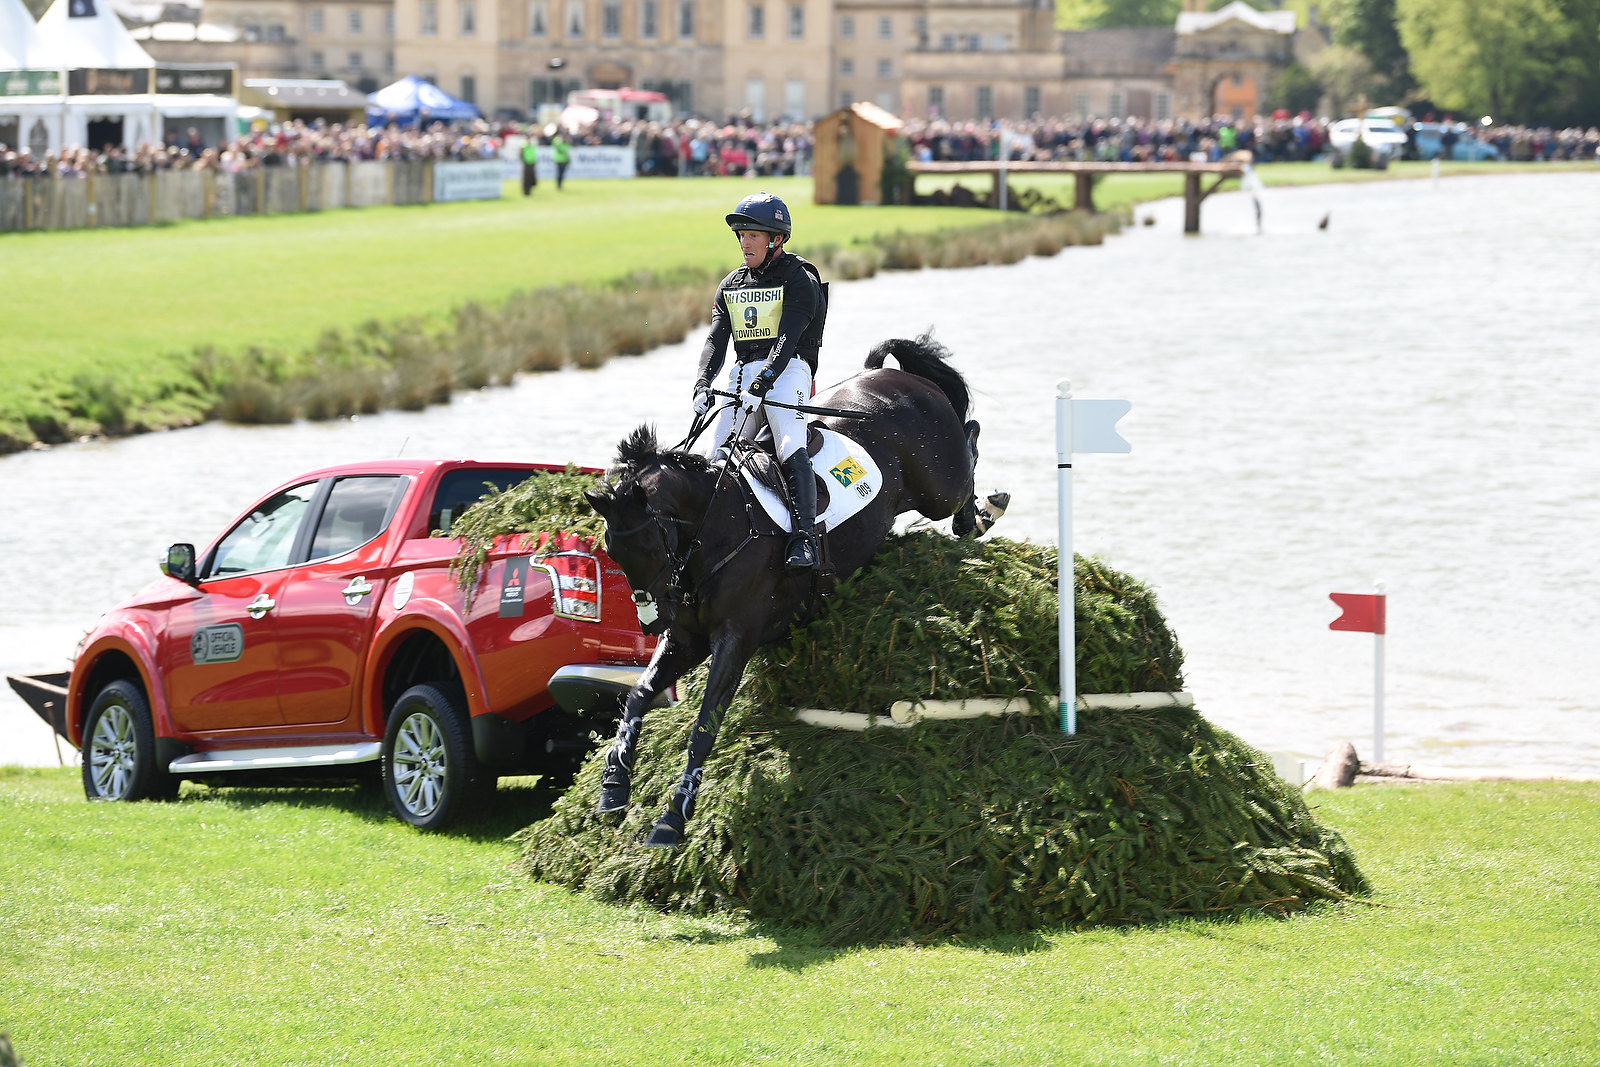 Mixed results for Wiltshire competitors at the Badminton Horse Trials